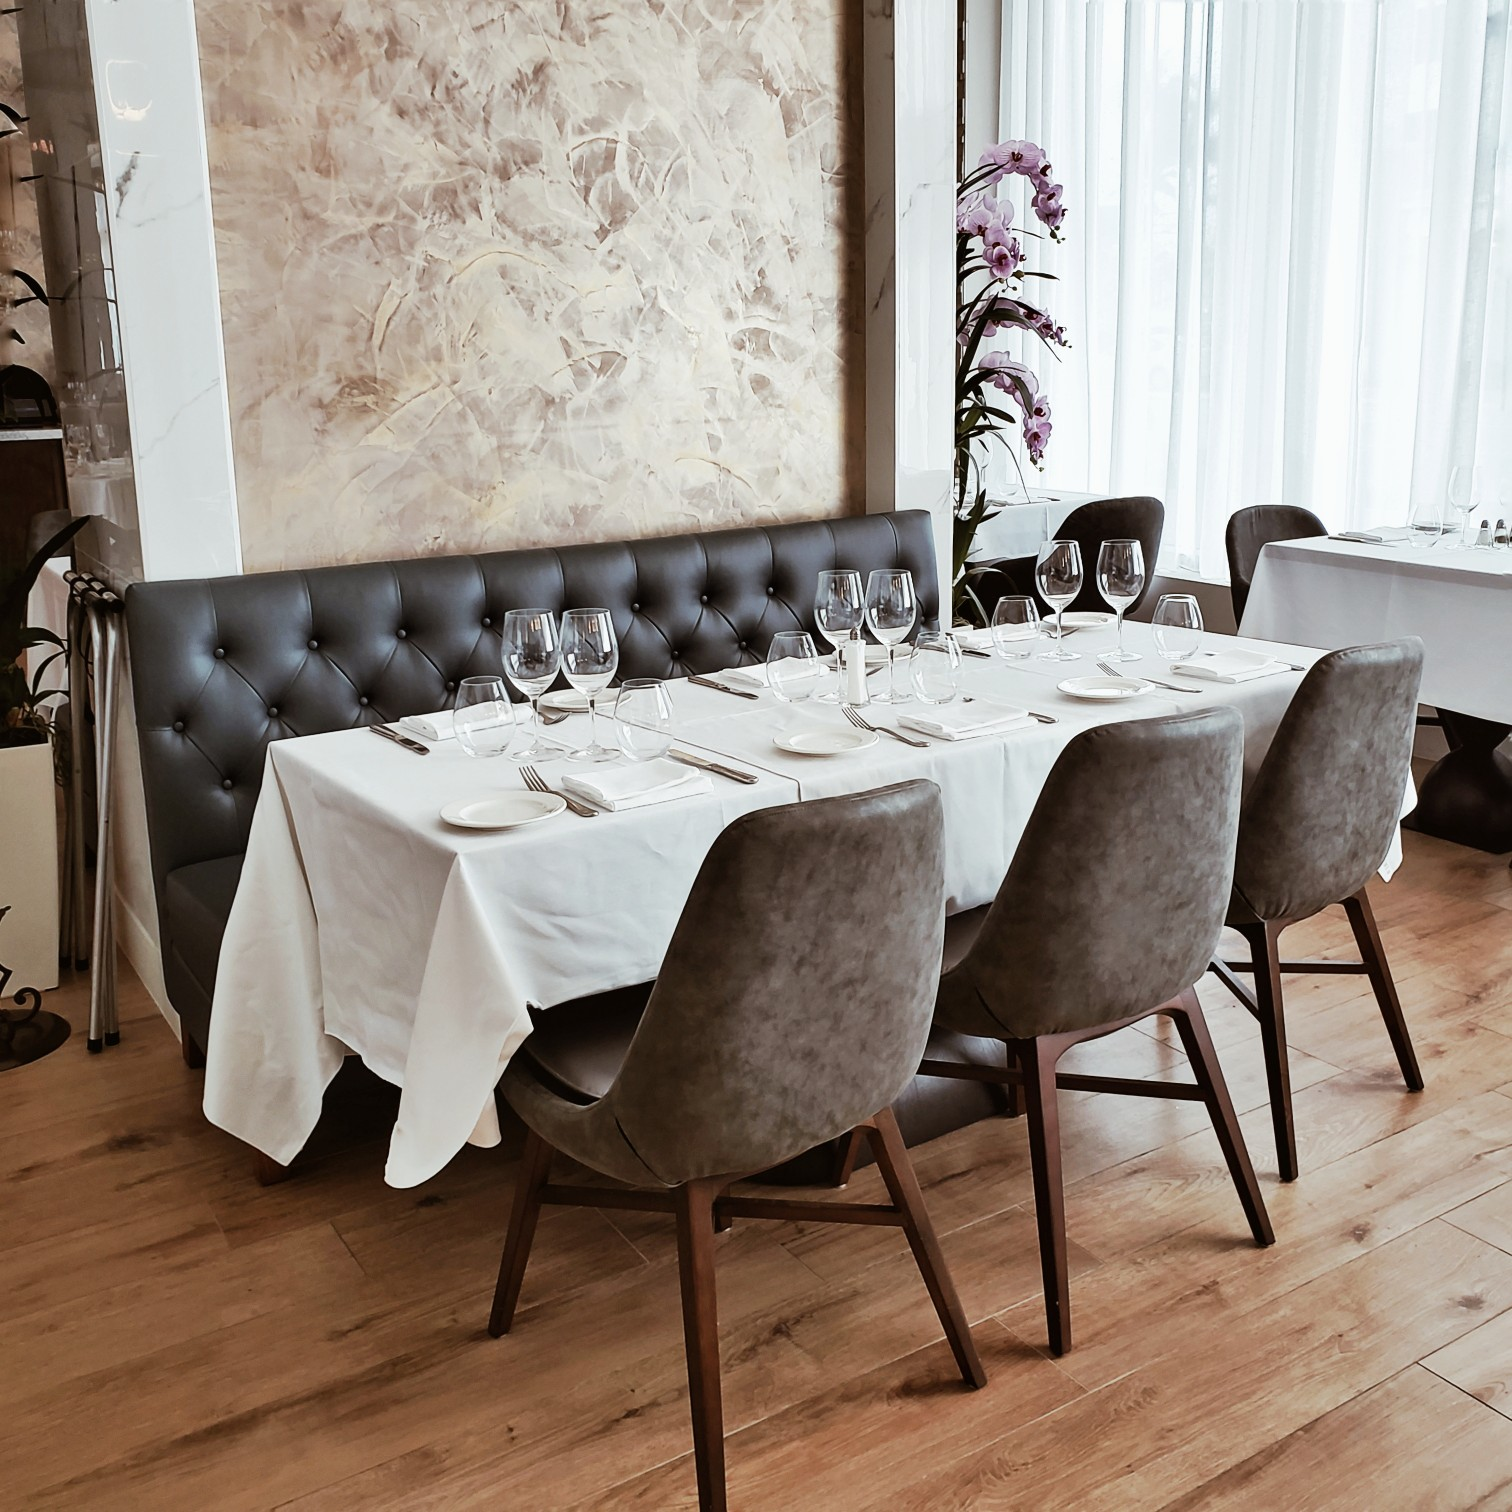 Chic restaurant table setting at Circ Hotel